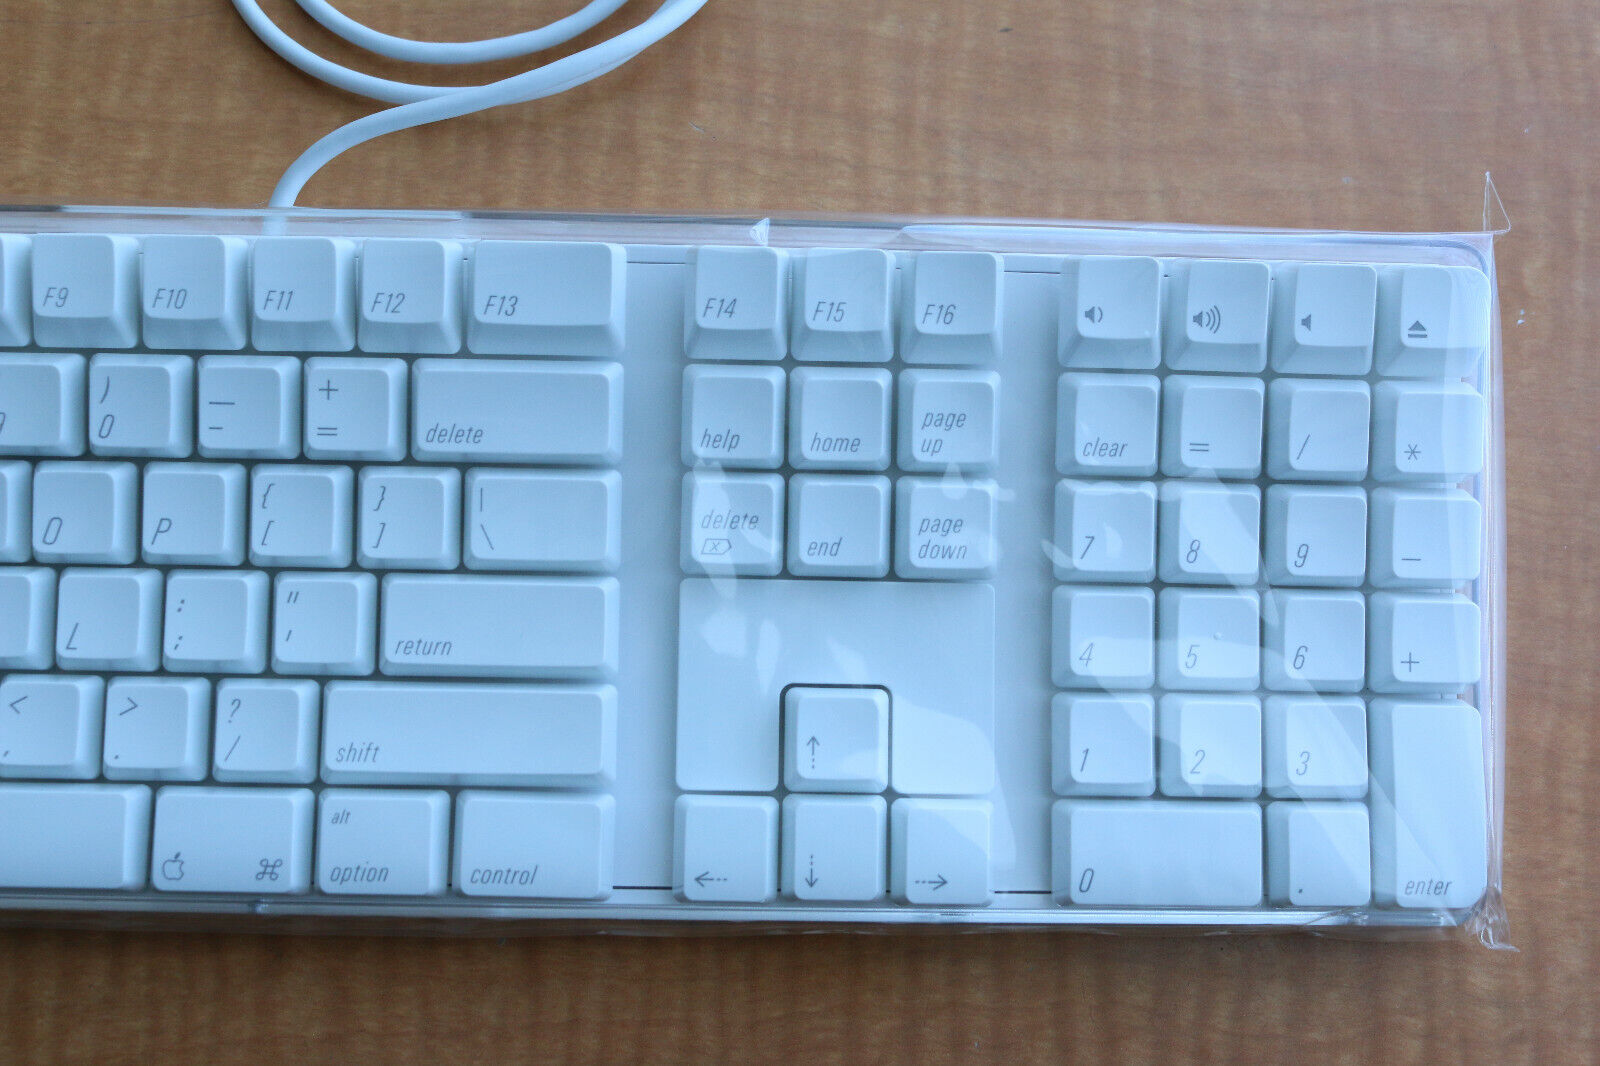 Brand New Apple A1048 English Layout wired full size USB keyboard 6580306 2SB